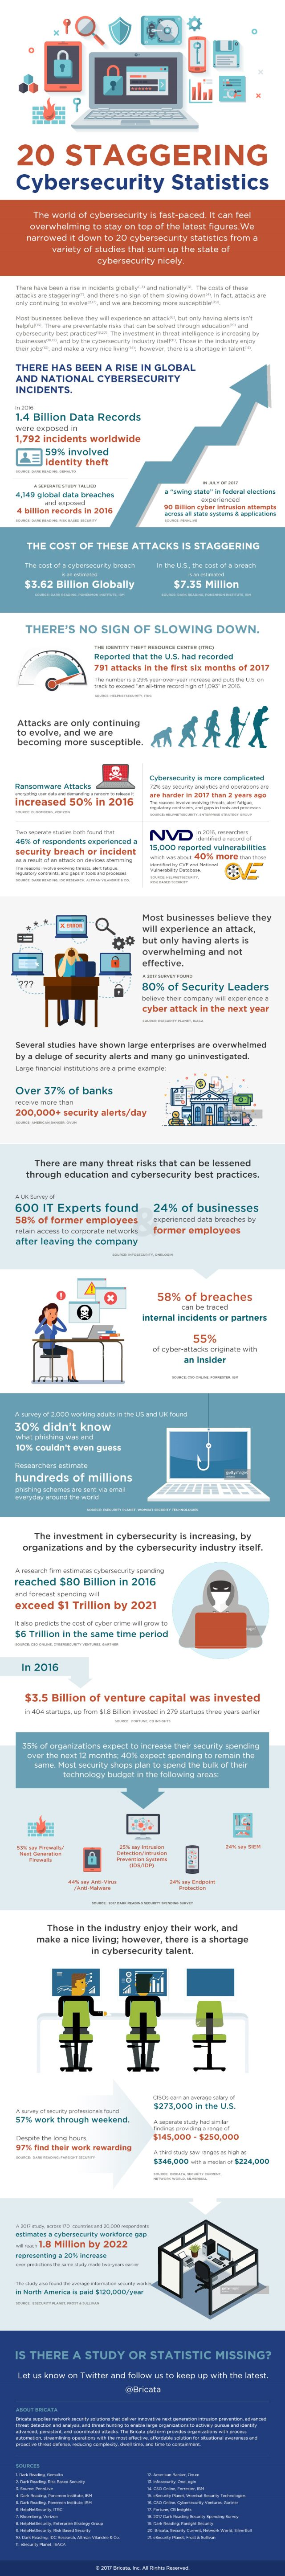 Bricata cyber security graphic